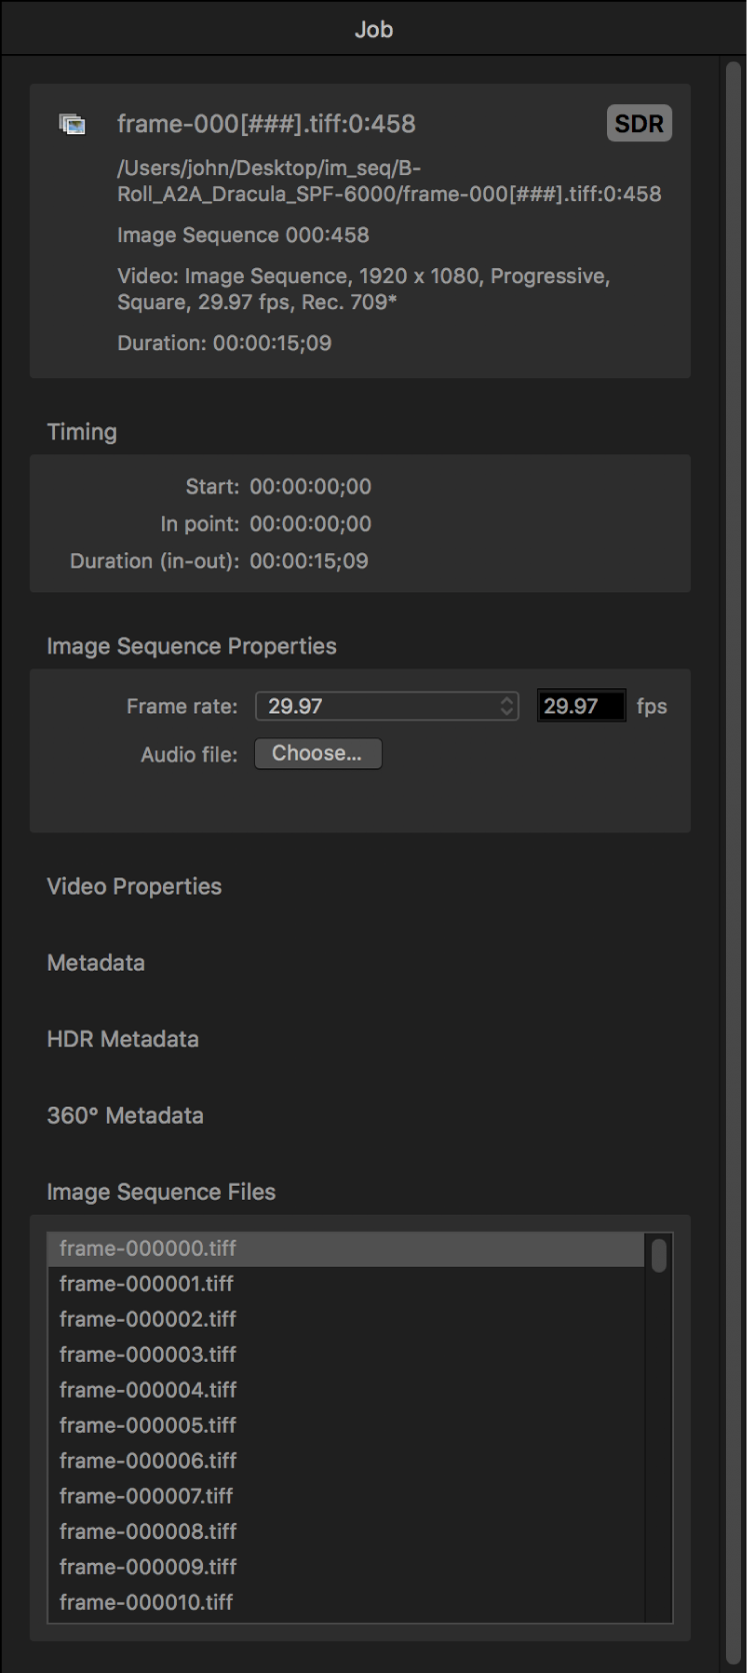 Job inspector showing properties for image sequence